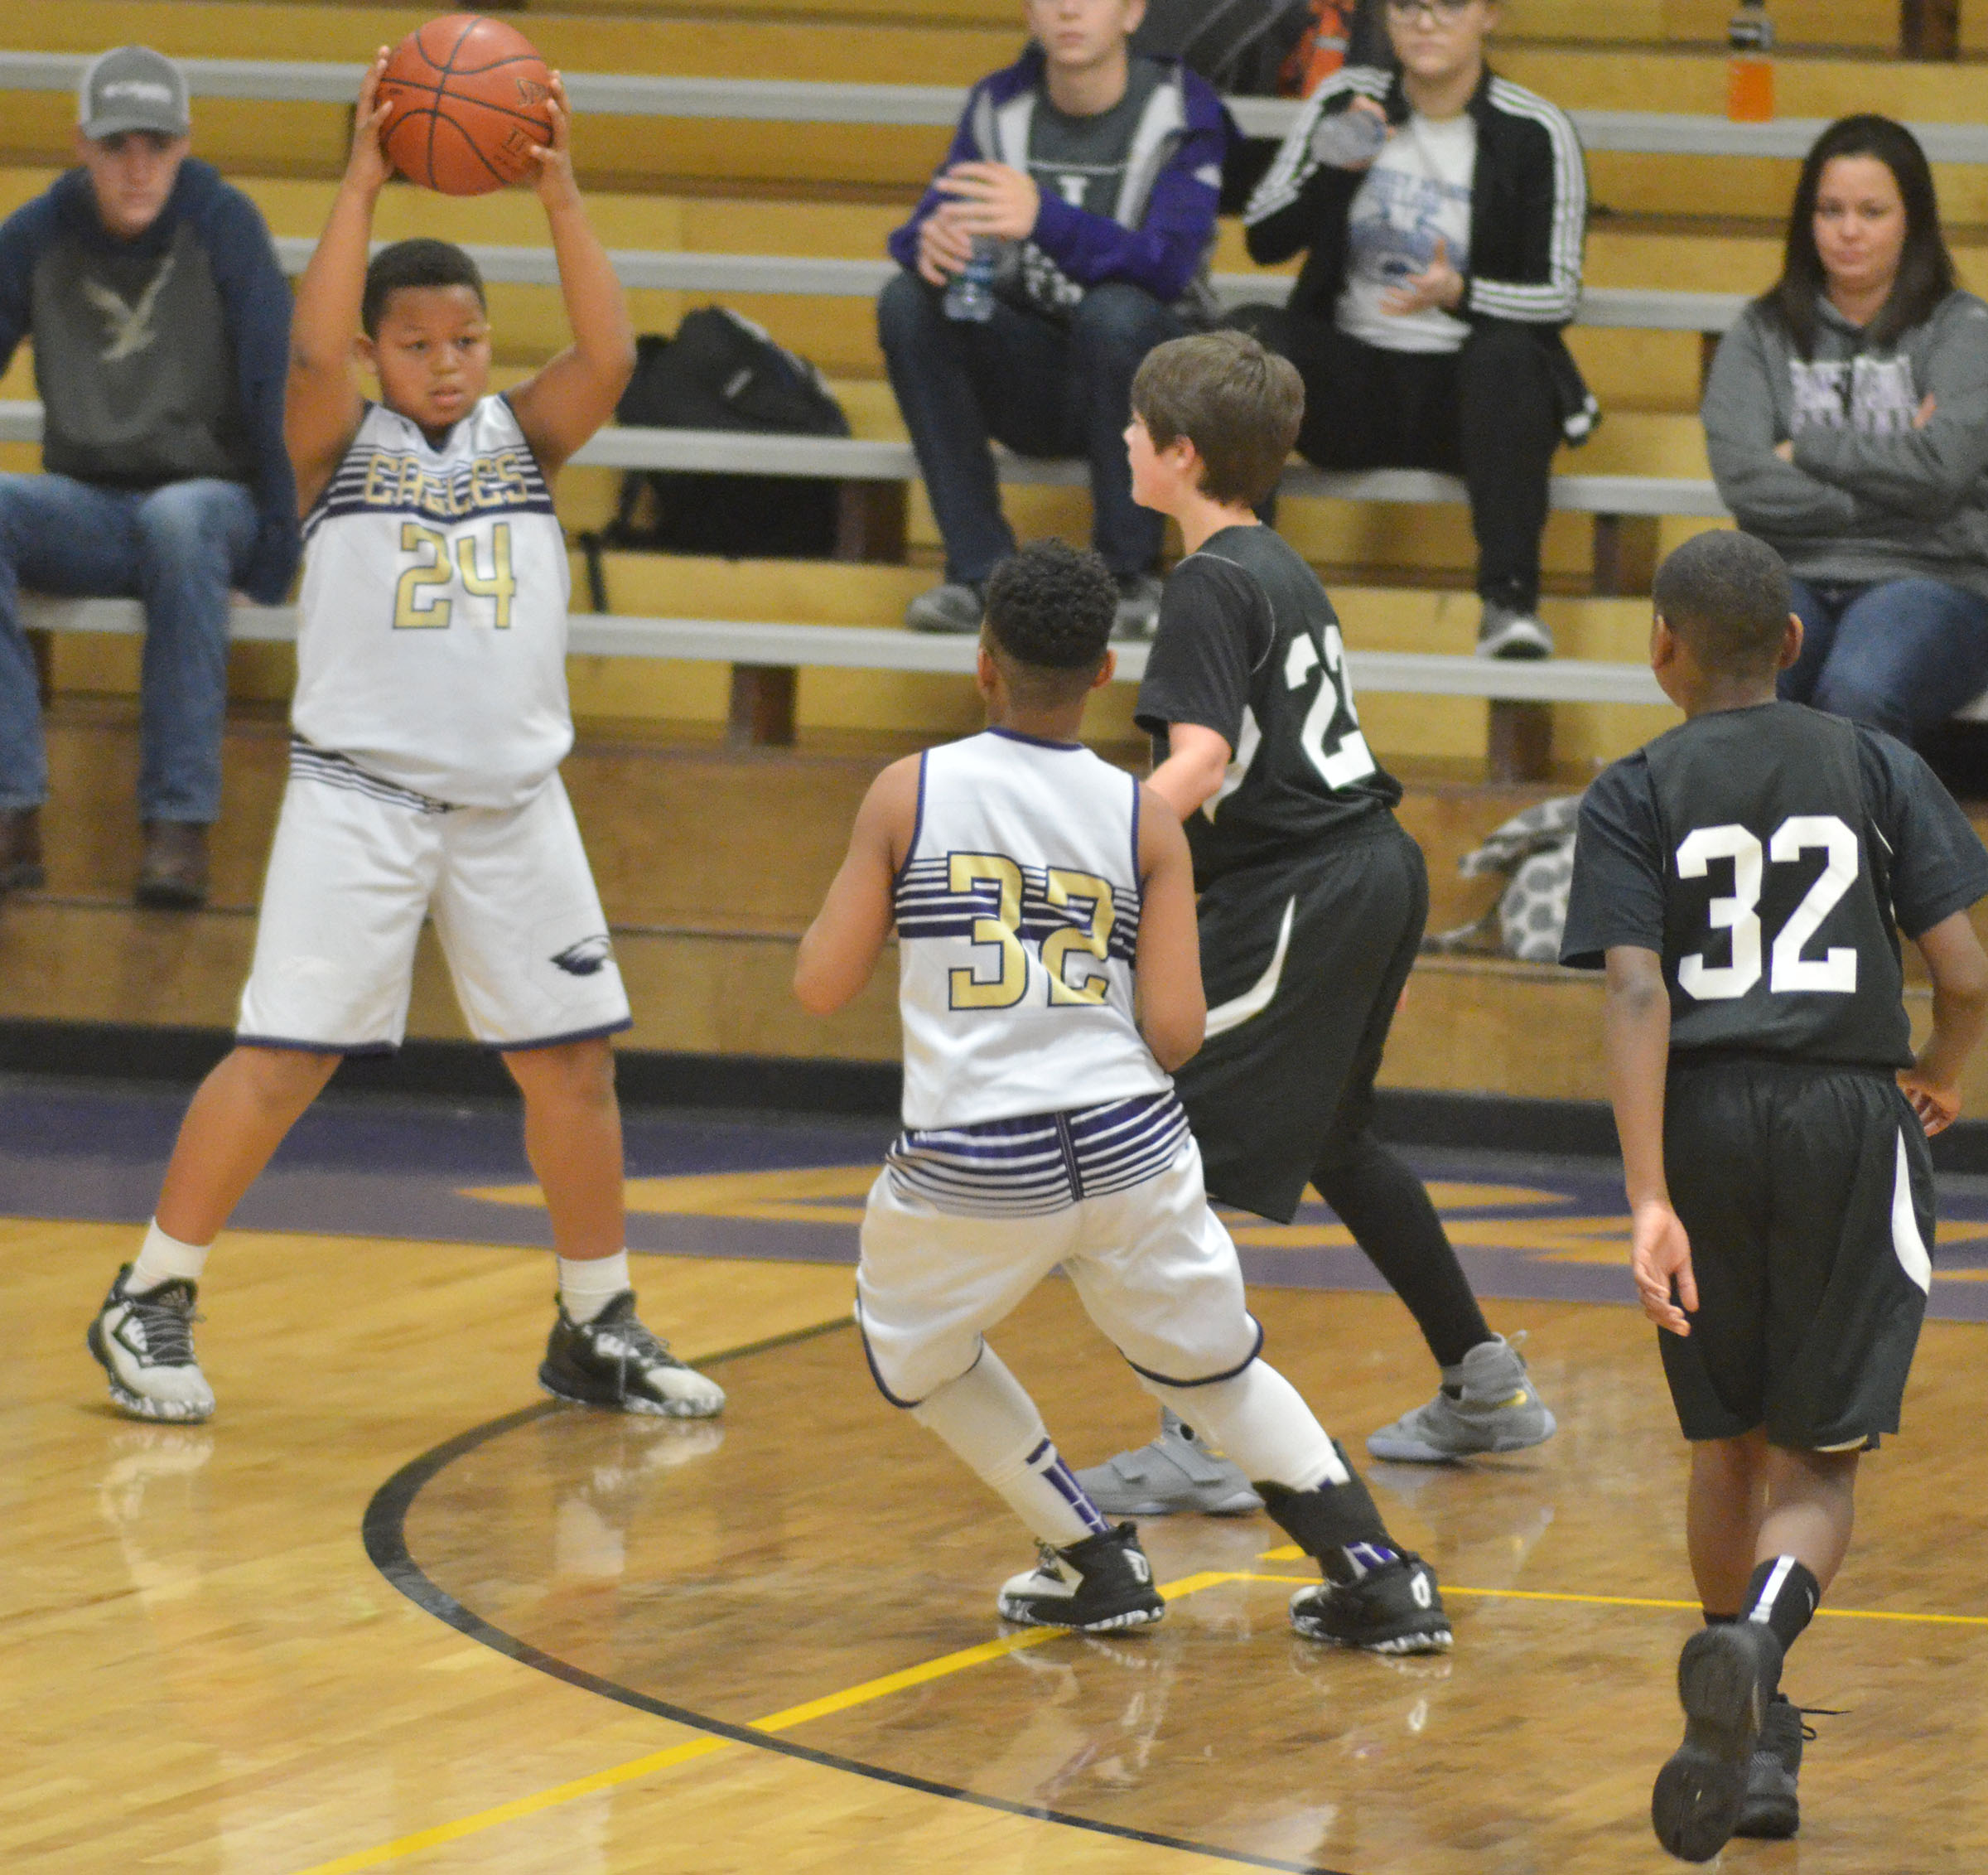 CMS sixth-grader Keondre Weathers passes the ball to his twin brother, Deondre.